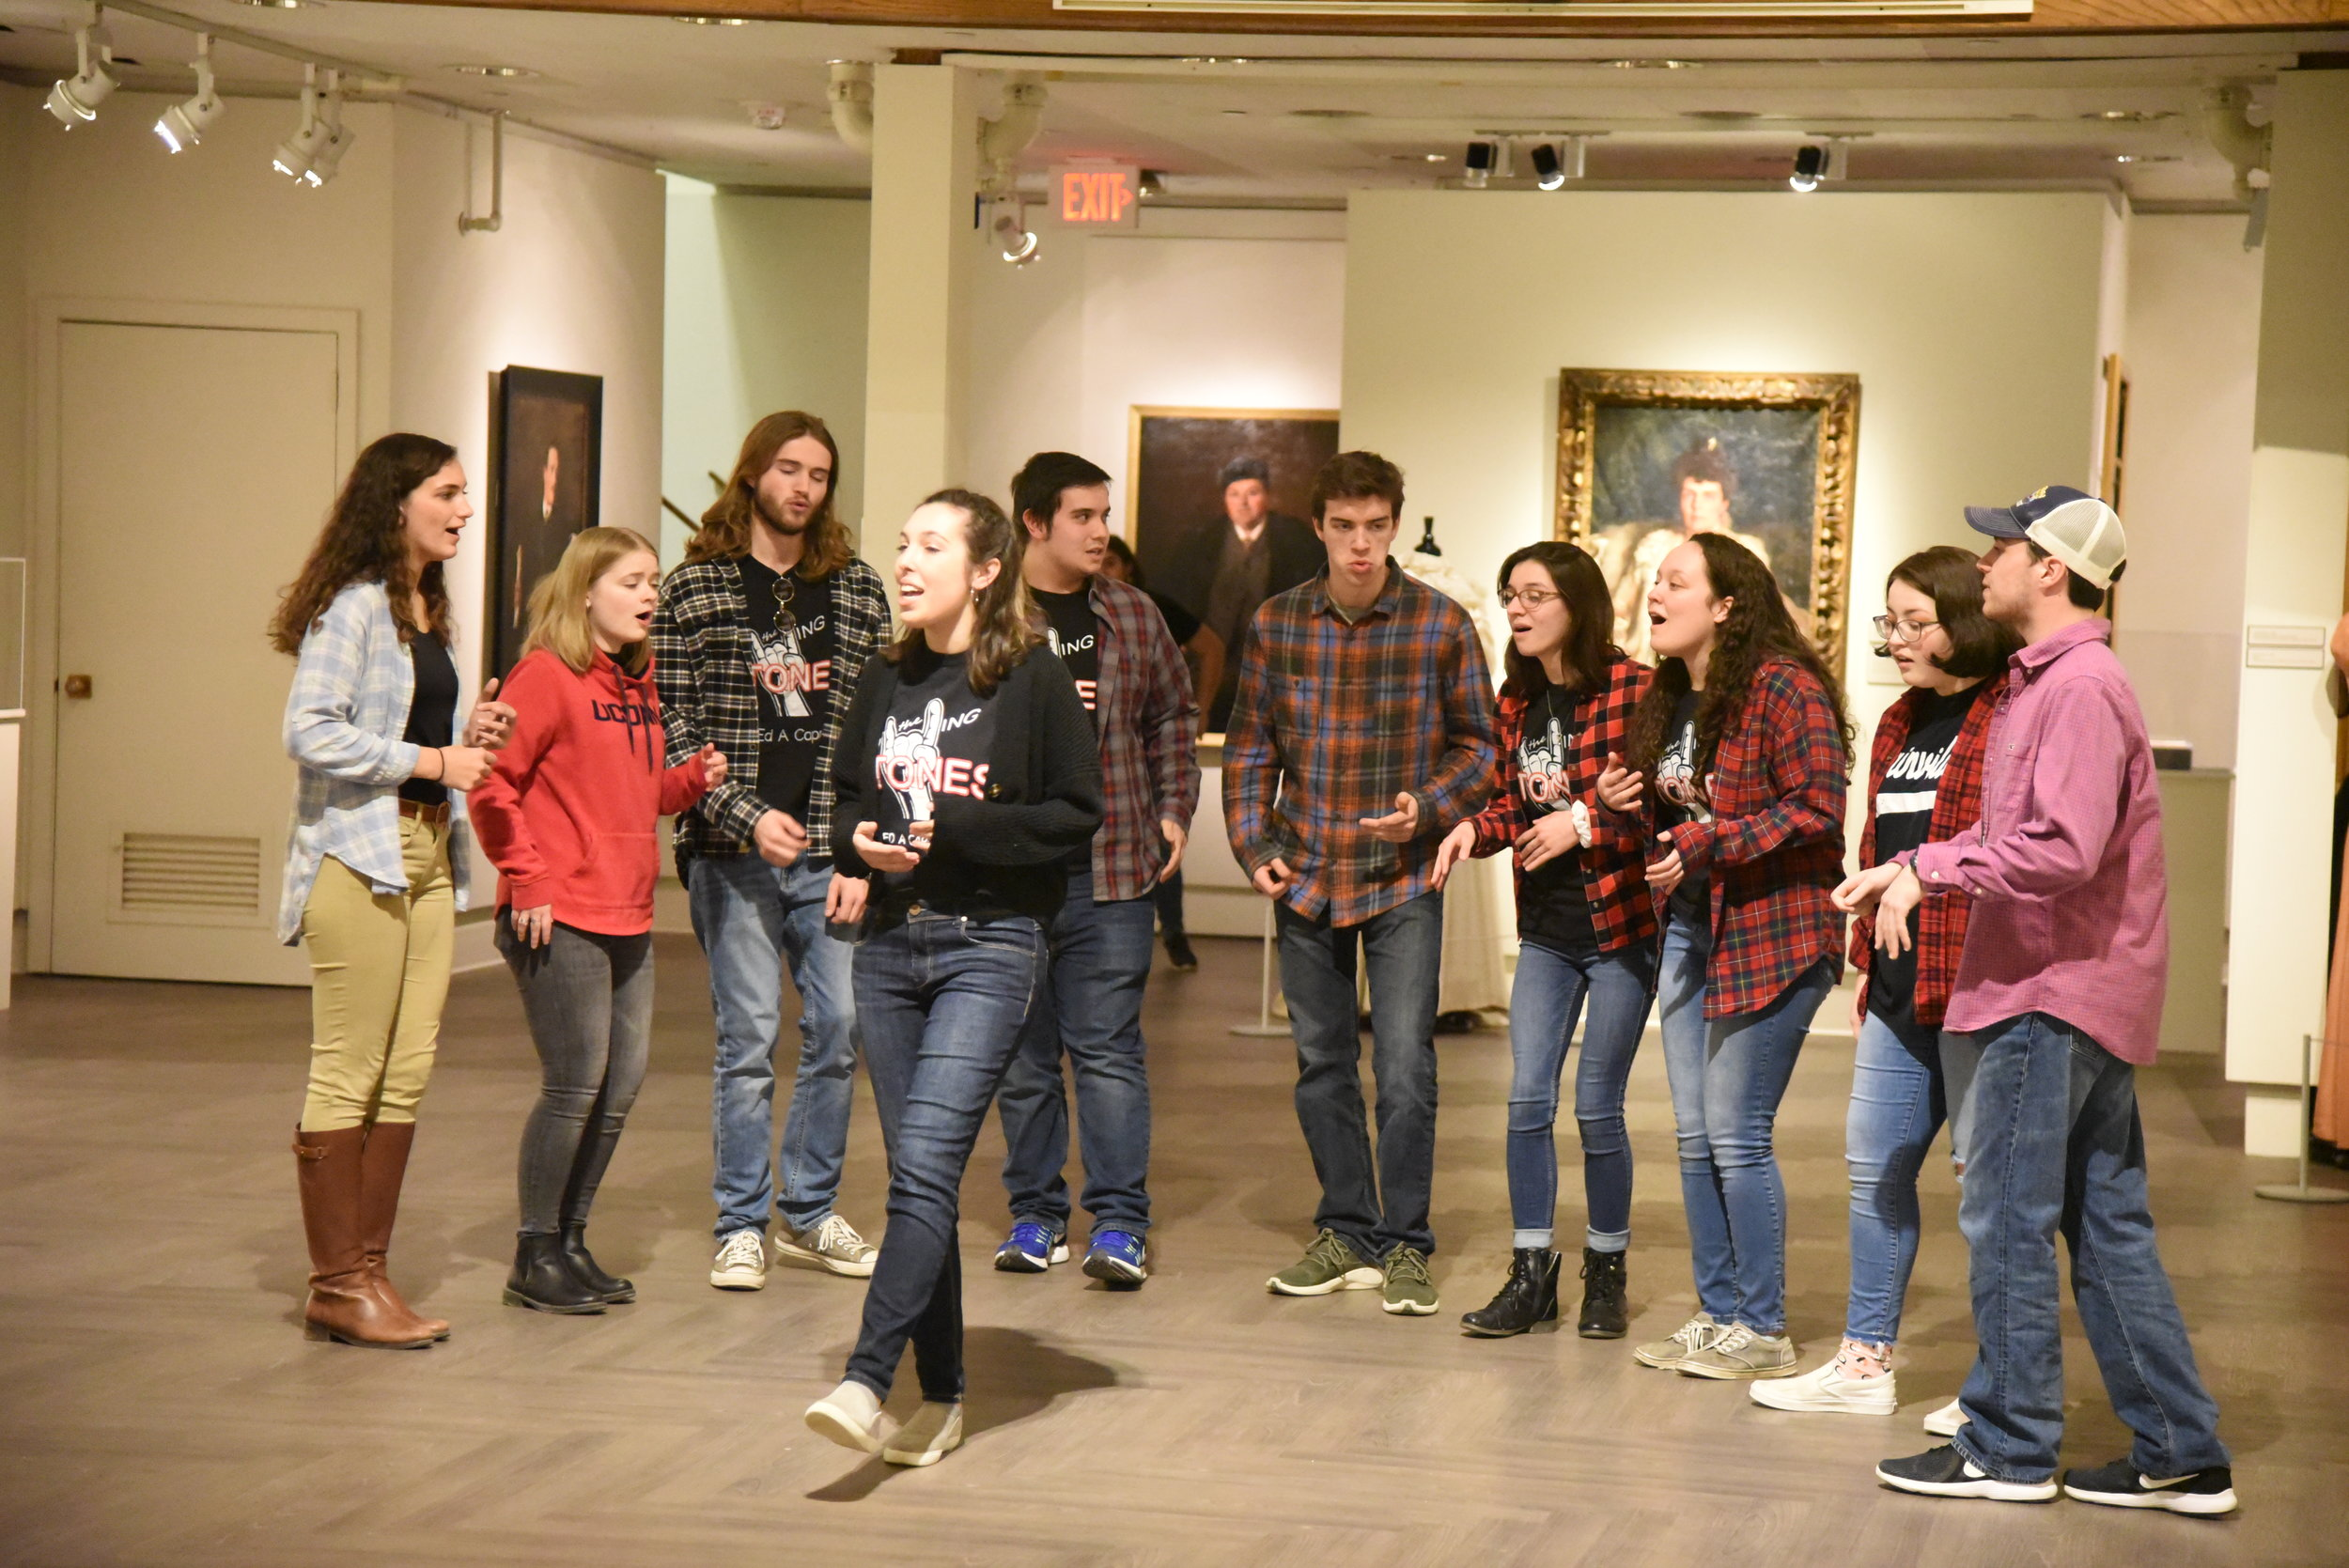 For this month, the Benton welcomed two Acapella groups, the Rolling Tones and Rubyfruit, for performances and offered many fun activities such as a photo booth and a scavenger hunt. (Kush Kumar/The Daily Campus)